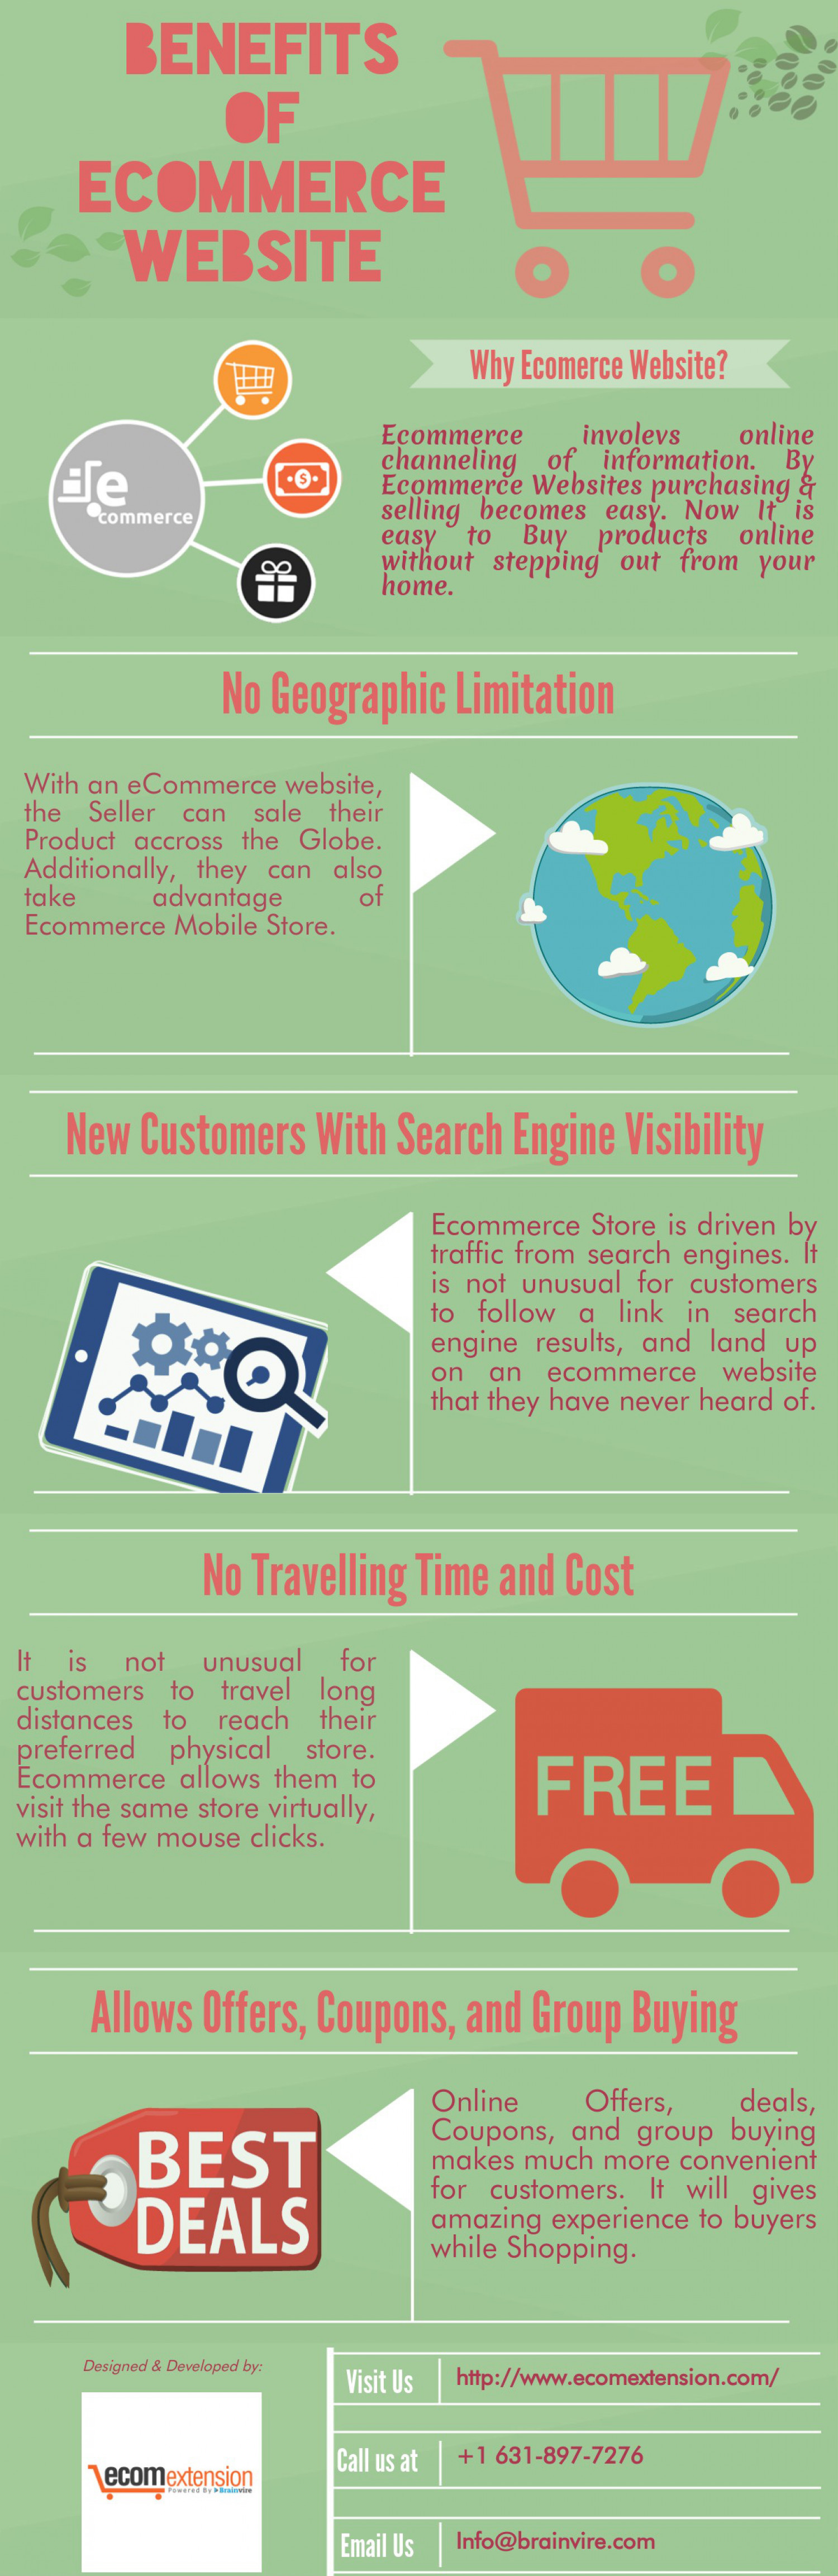 Benefits of Ecommerce Website Infographic